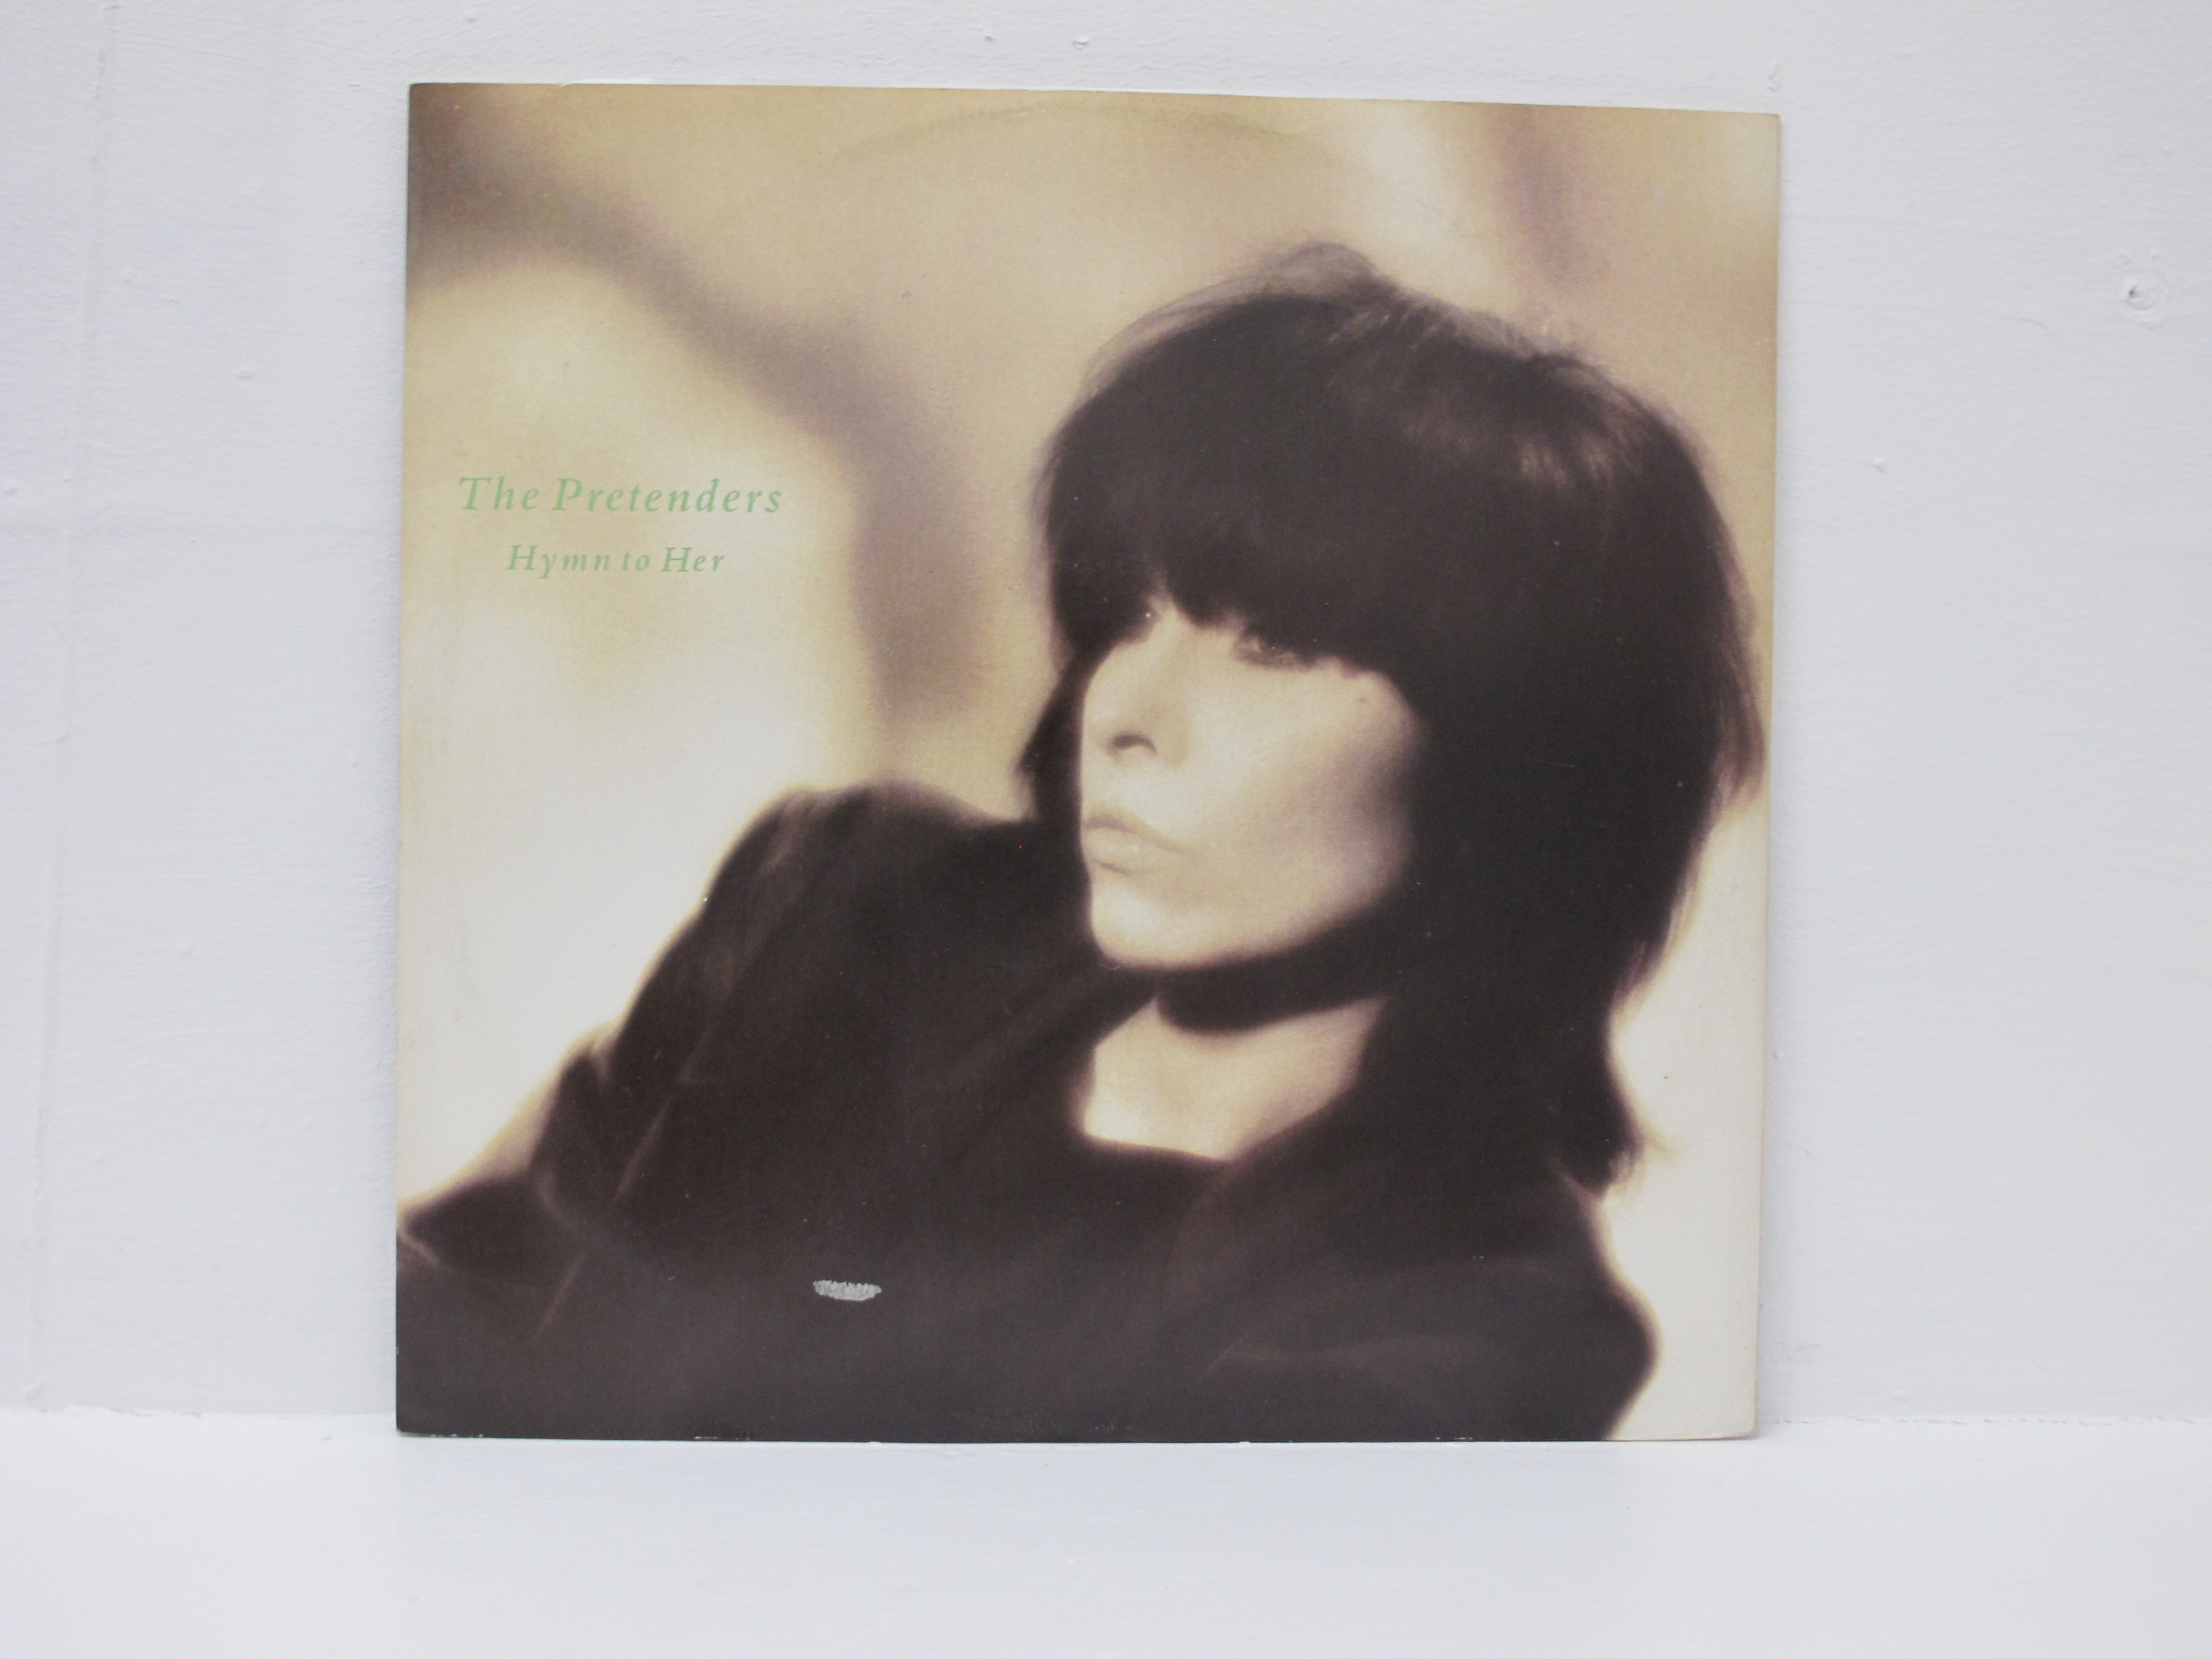 The Pretenders - Hymn To Her